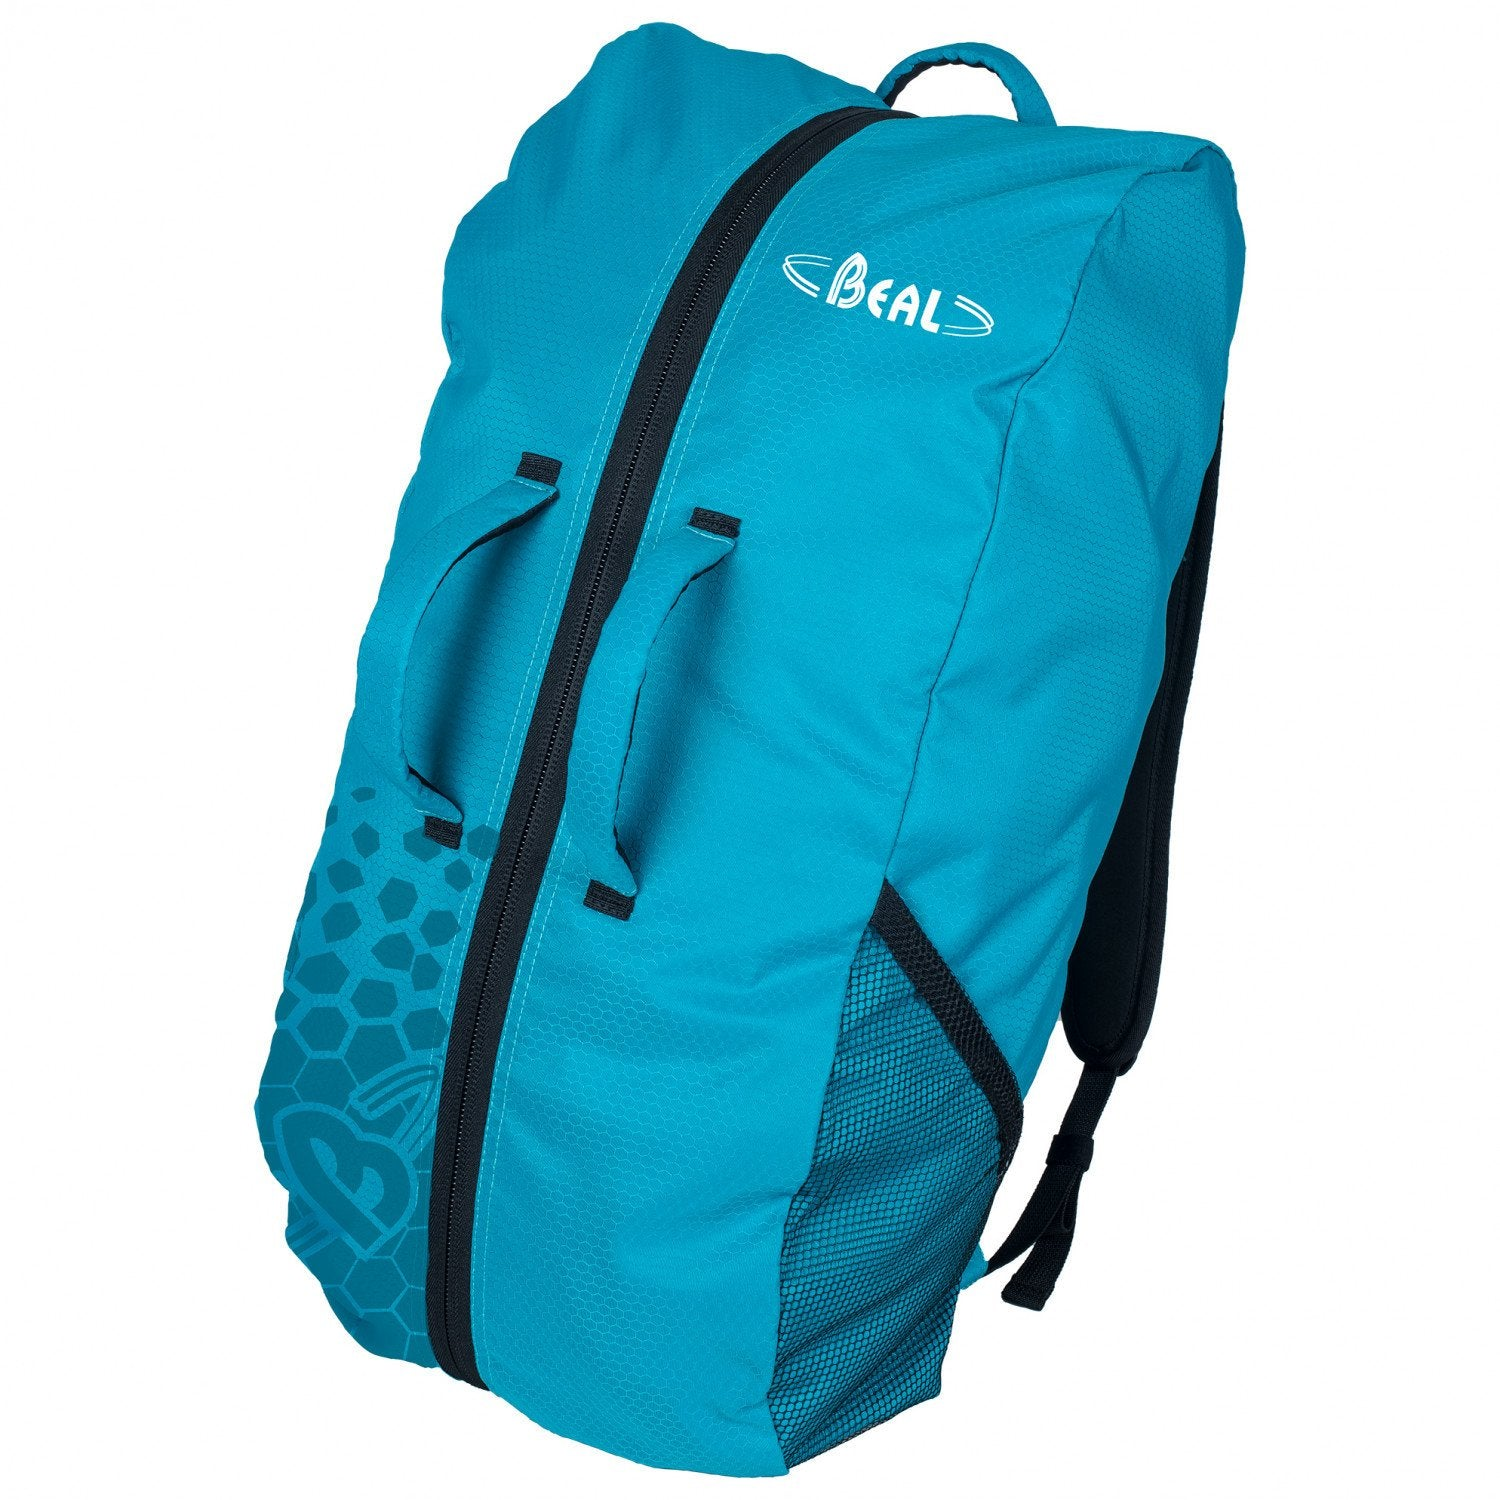 Beal Combi Rope Bag, shown closed and upright in Turquoise colour